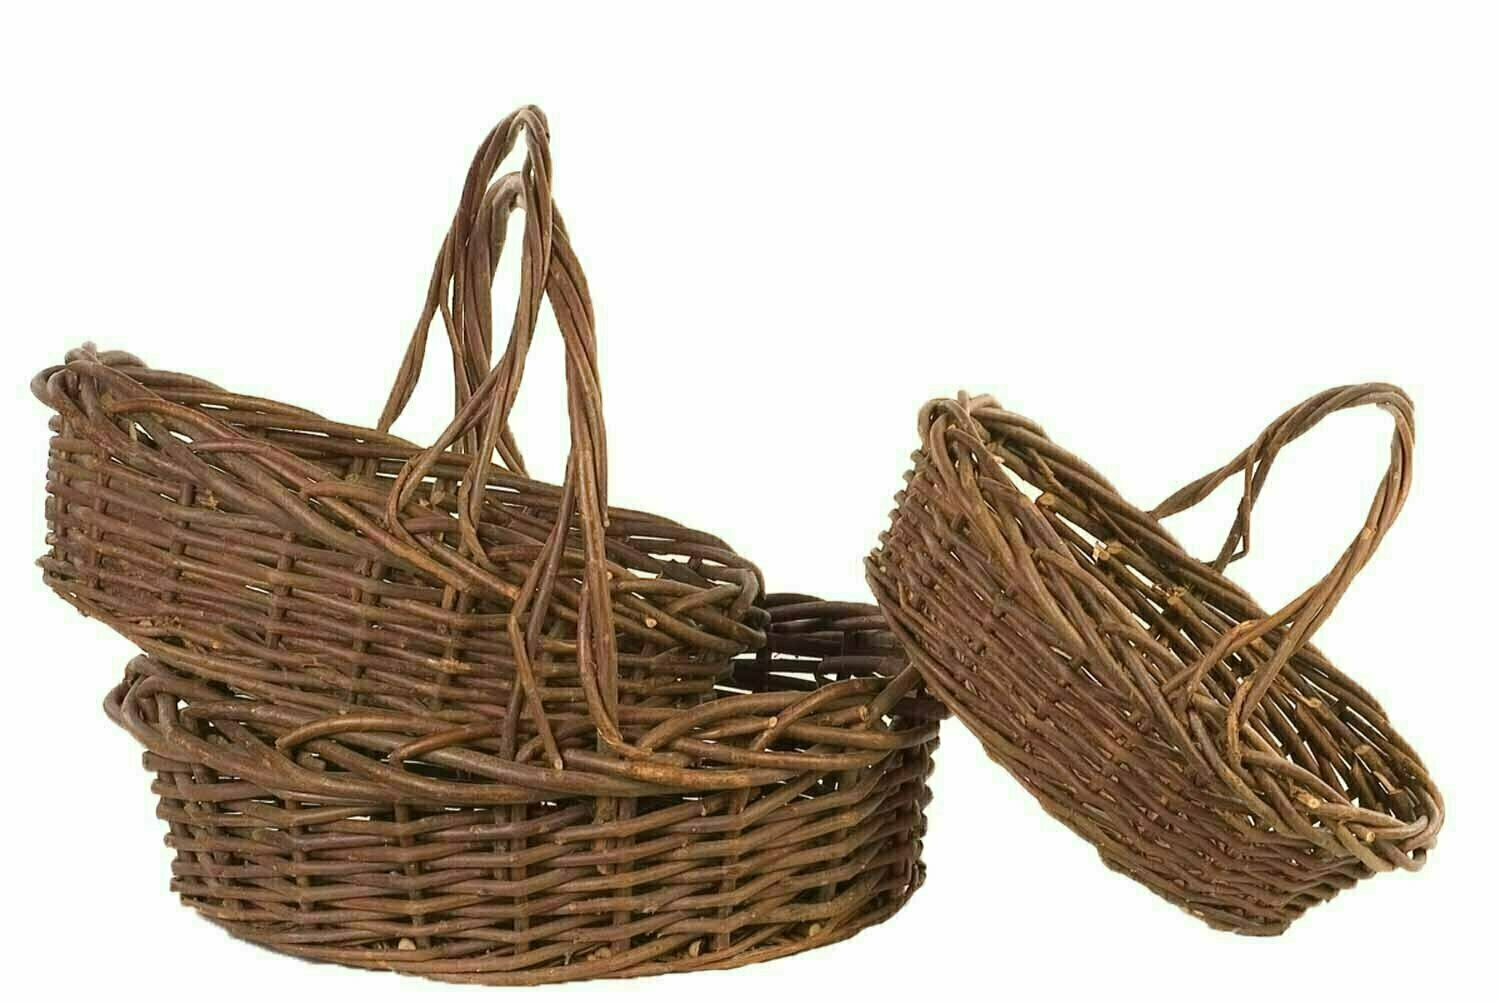 MS1102 - S/3 Large Oval Rustic Unpeeled Willow 14